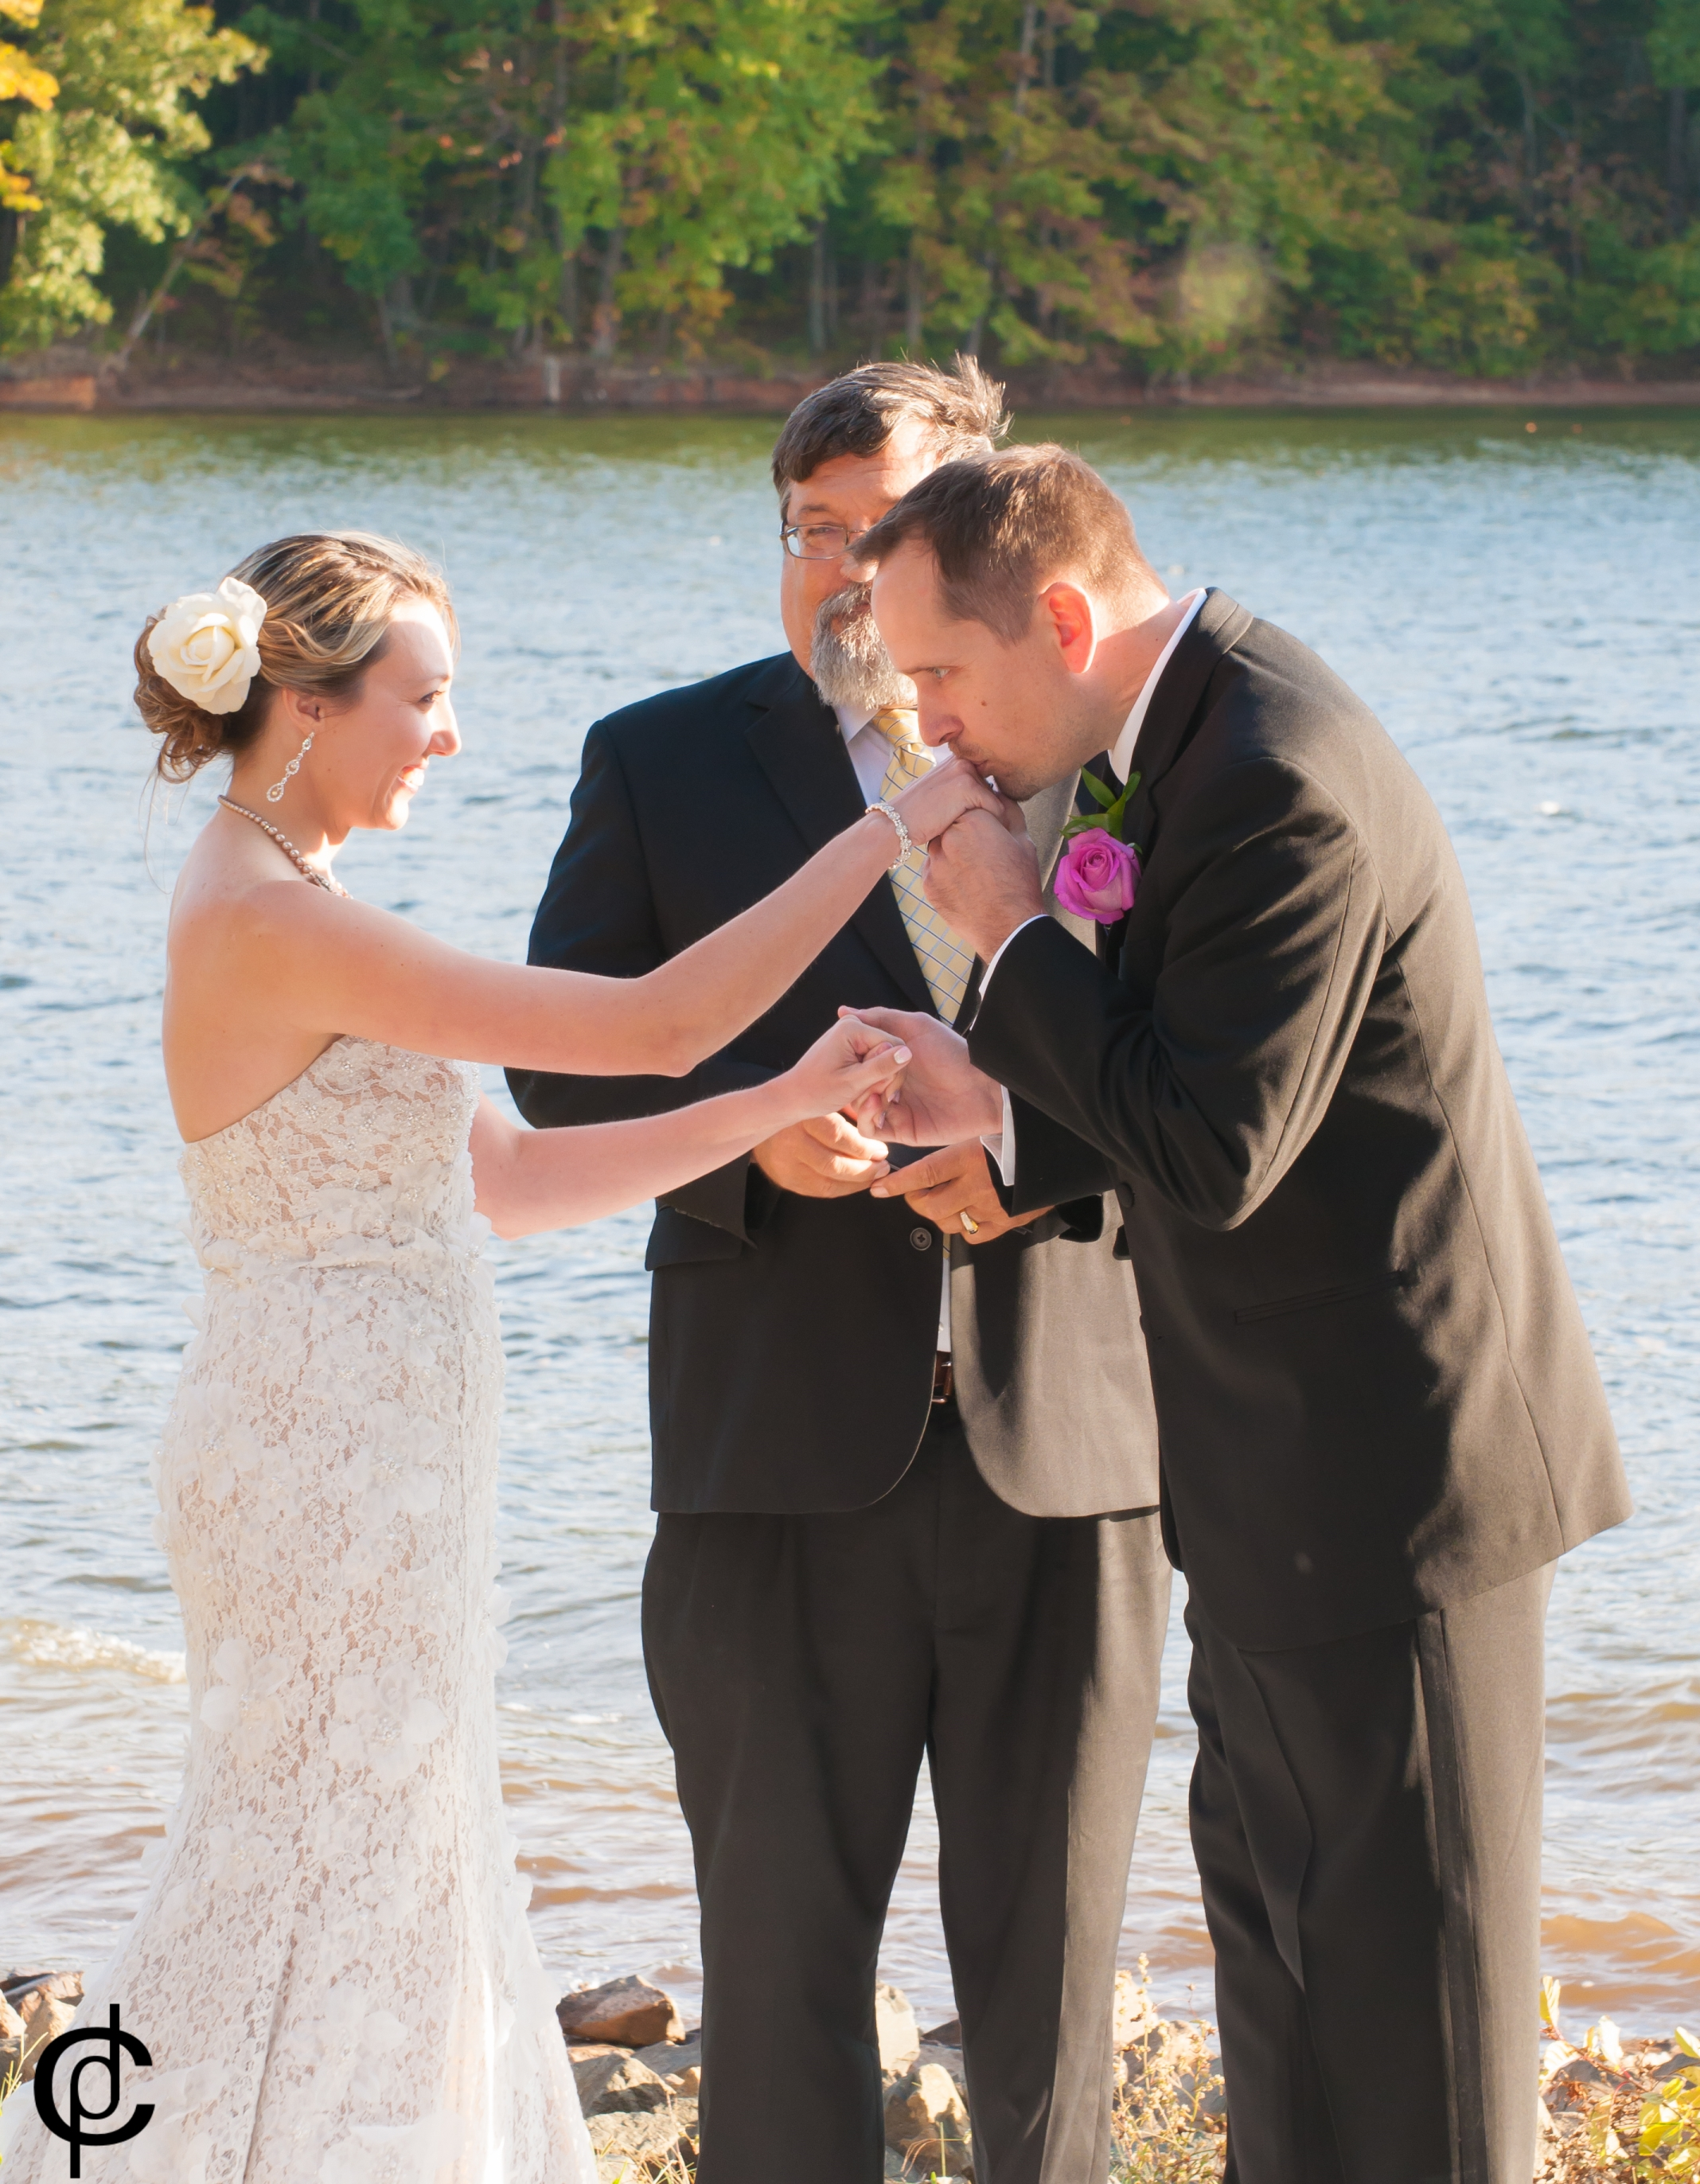 Lake Wedding - 16